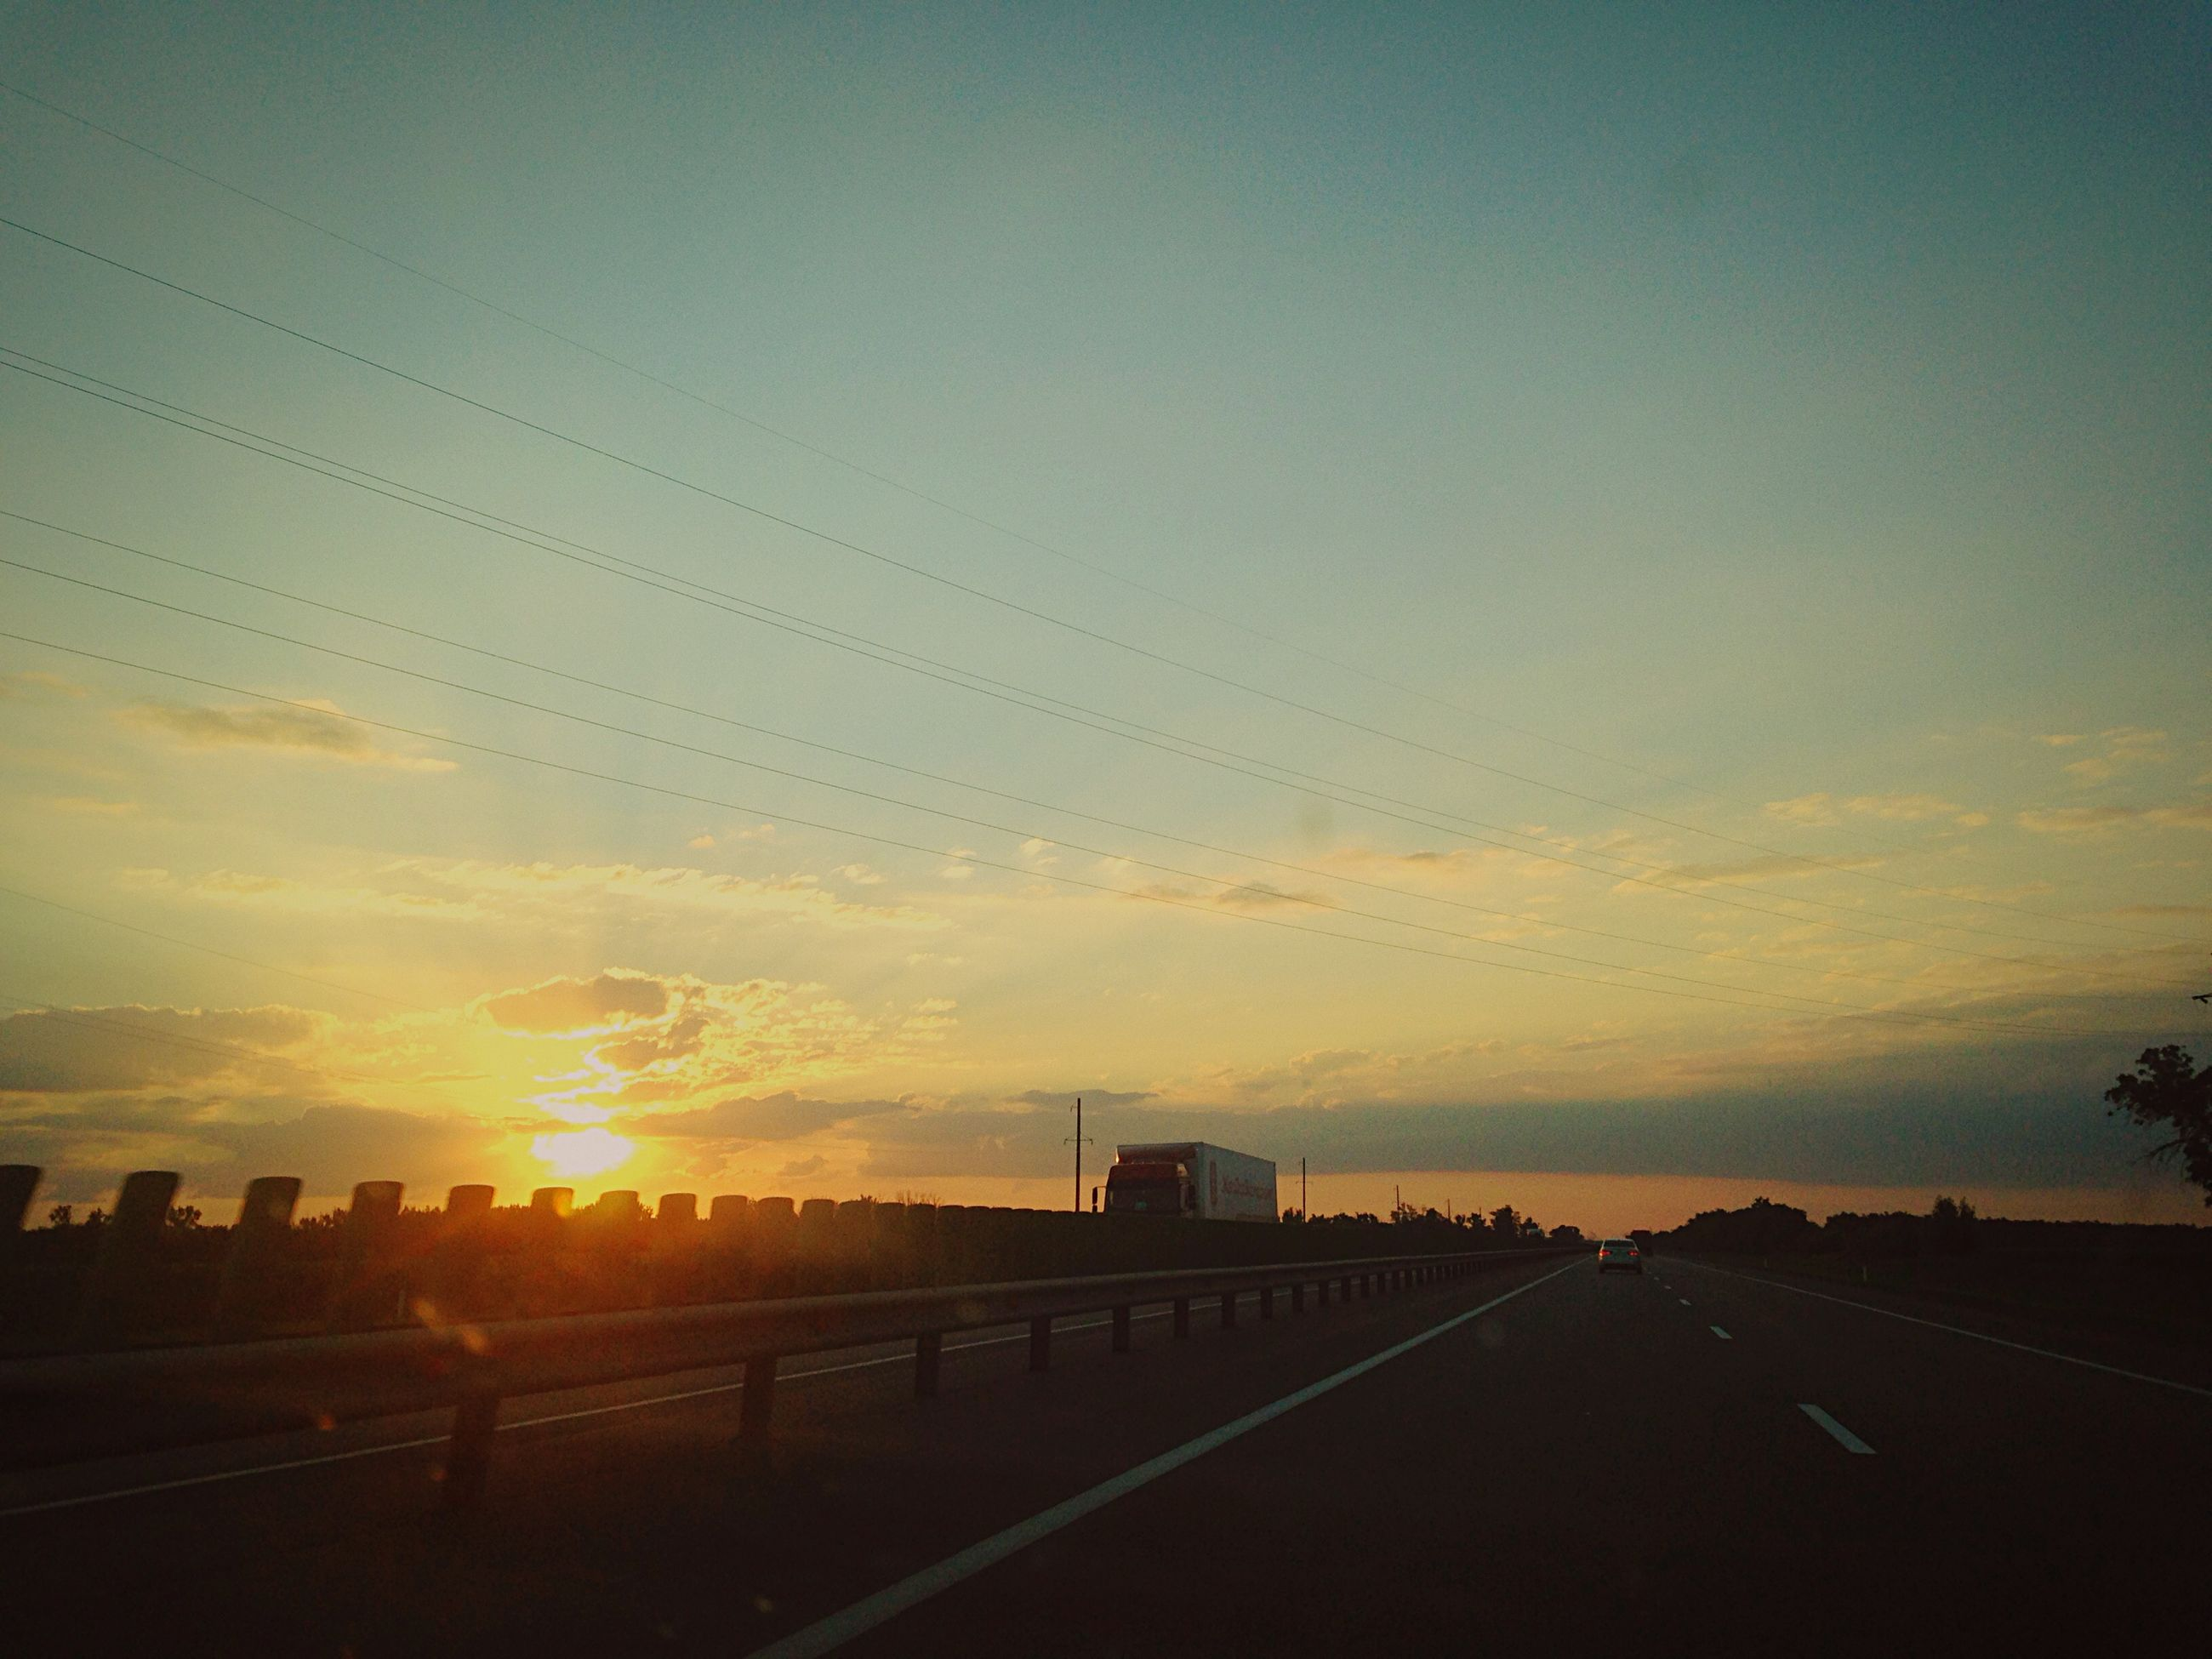 sunset, sky, silhouette, transportation, road, the way forward, orange color, cloud - sky, scenics, tranquility, sun, tranquil scene, nature, road marking, beauty in nature, diminishing perspective, landscape, sunlight, vanishing point, outdoors